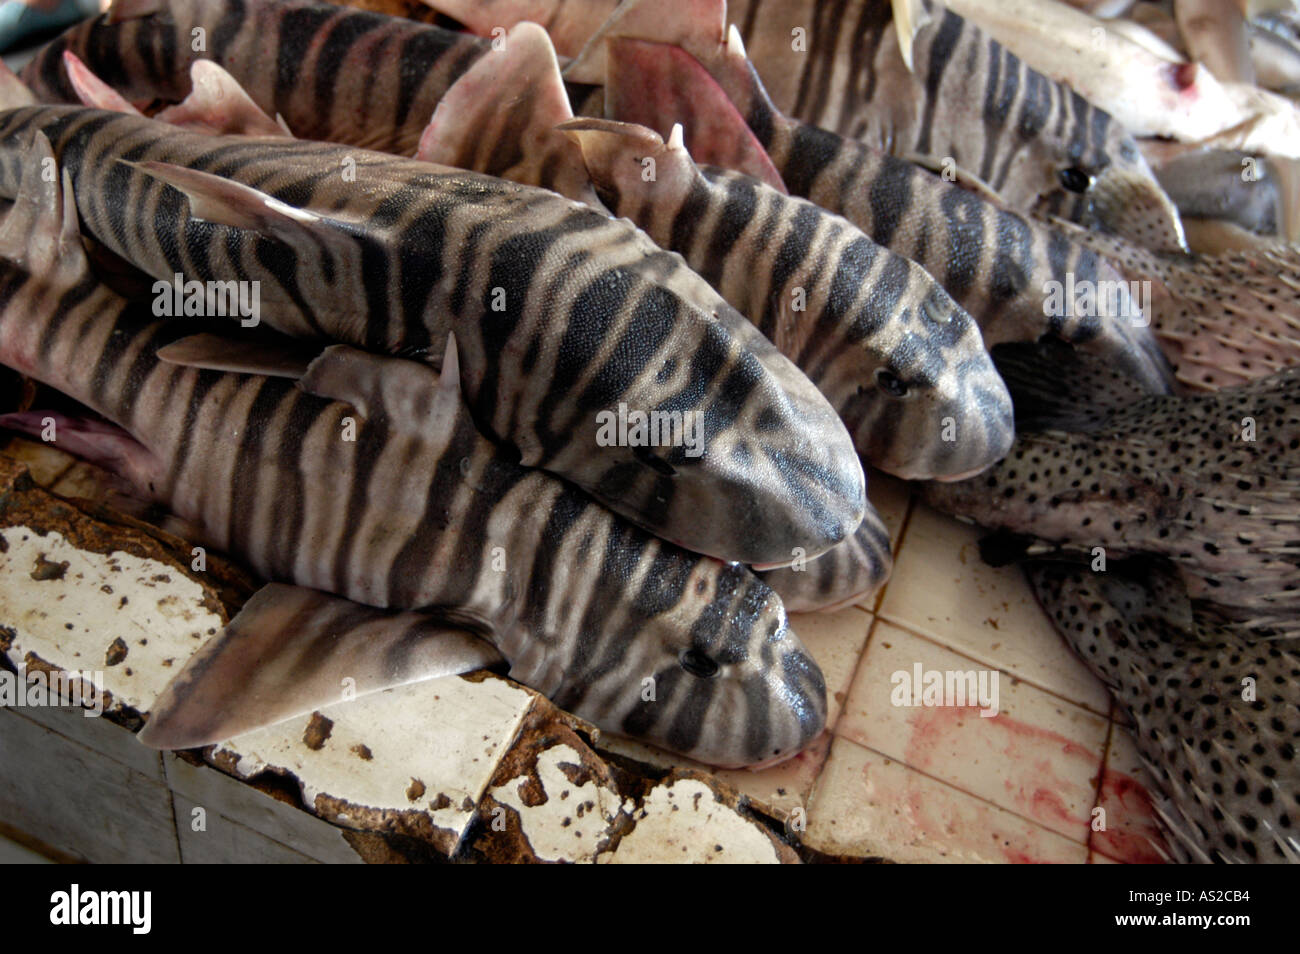 Zebra shark at fish market - Stock Image